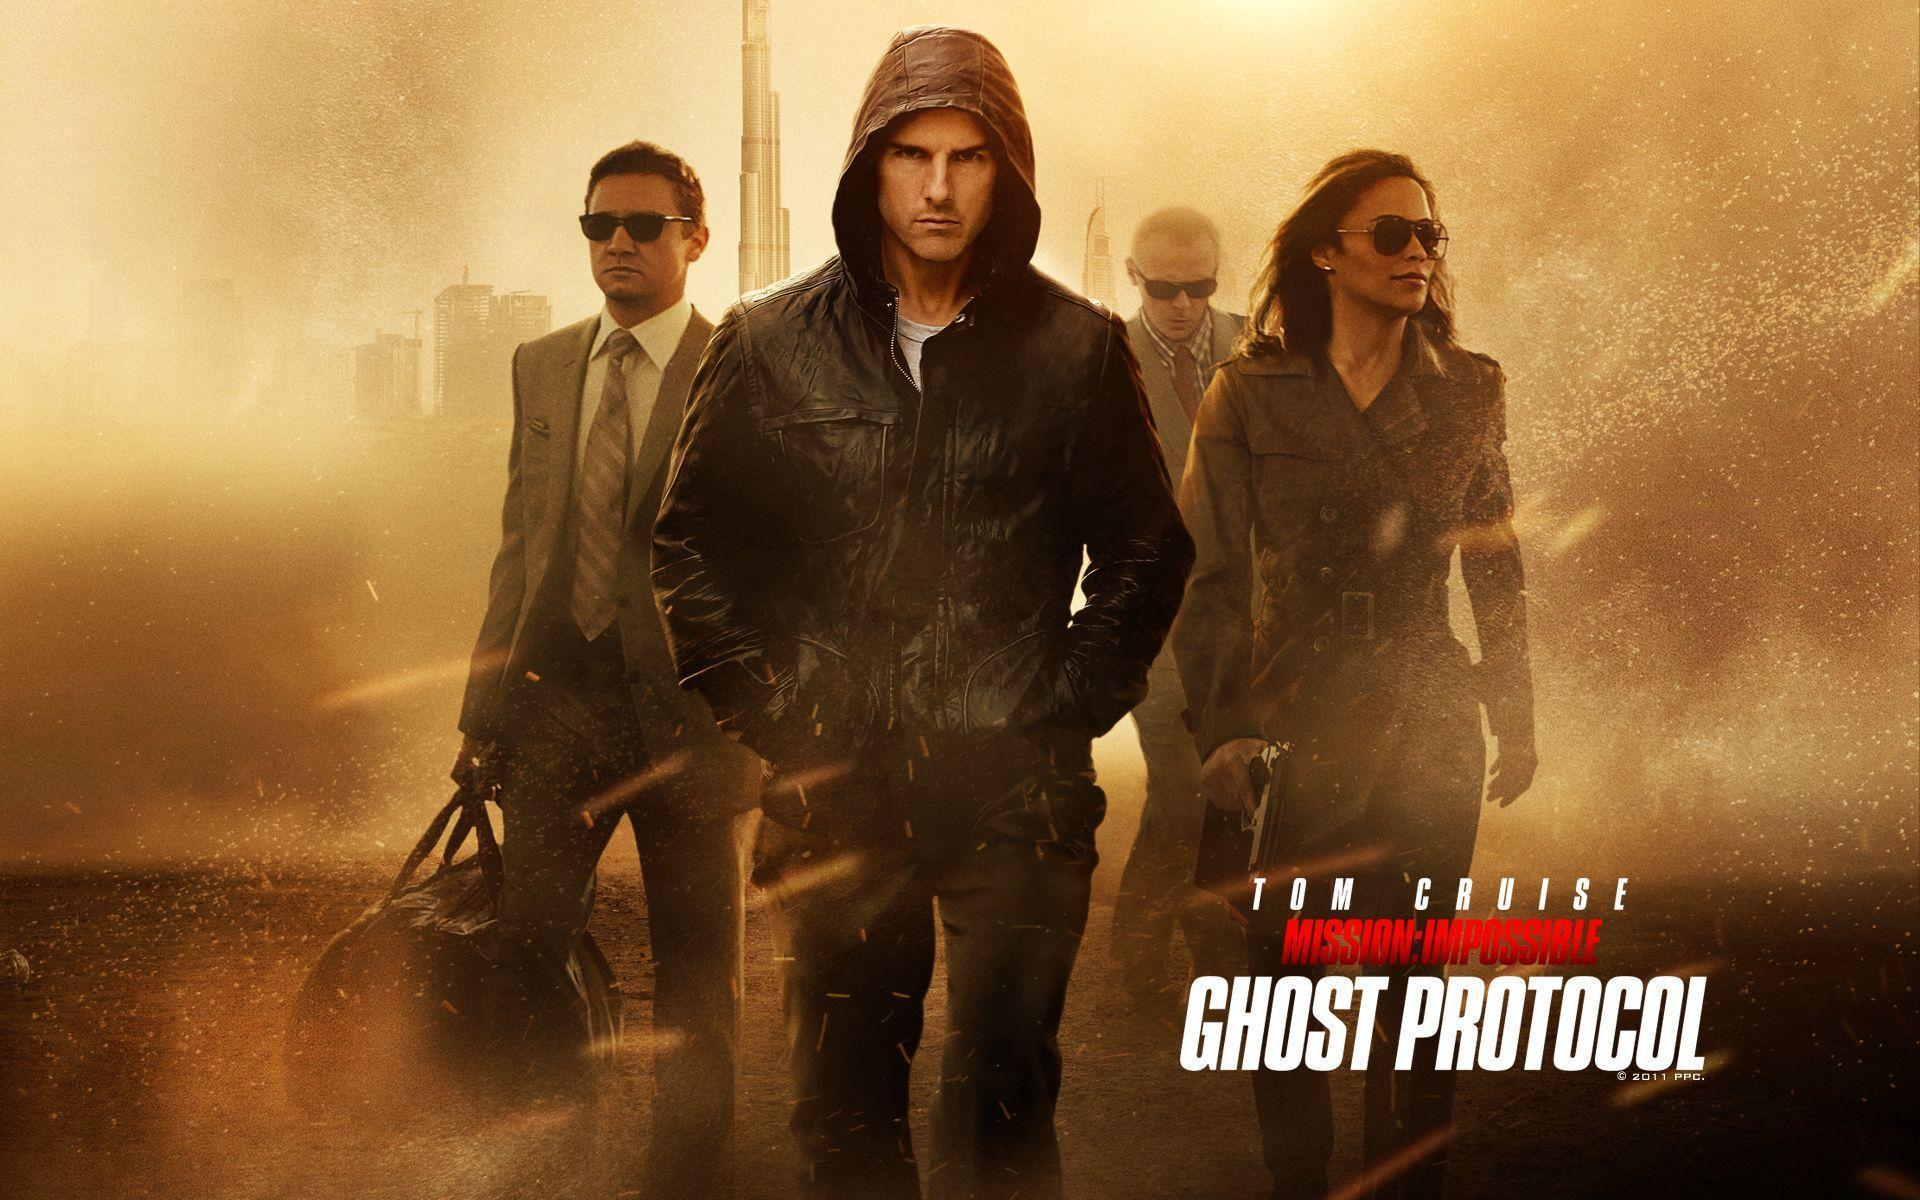 Mission Impossible Wallpapers Top Free Mission Impossible Backgrounds Wallpaperaccess